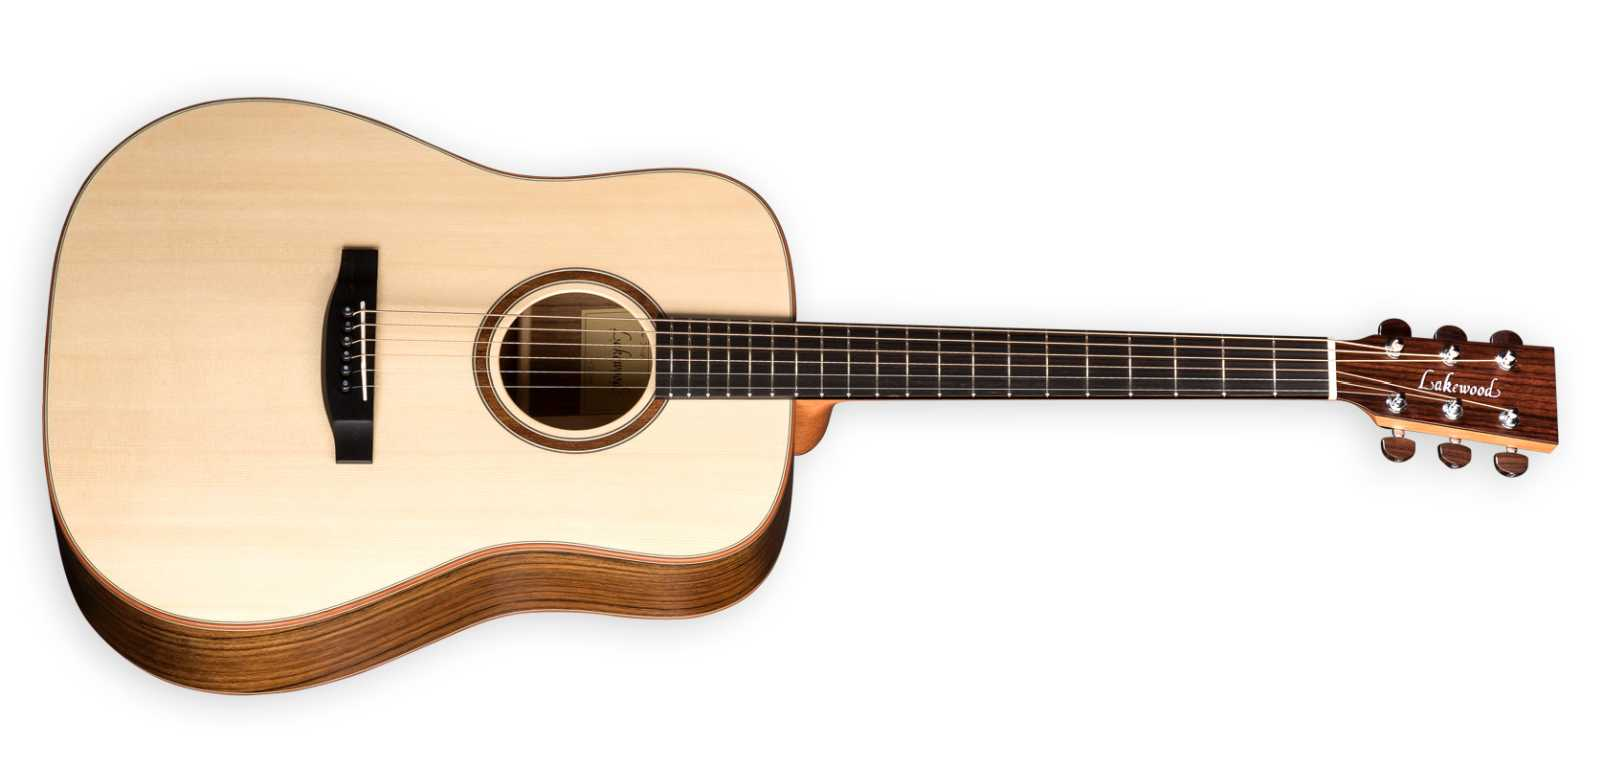 Lakewood Guitars D-18 Dreadnought Ovankol